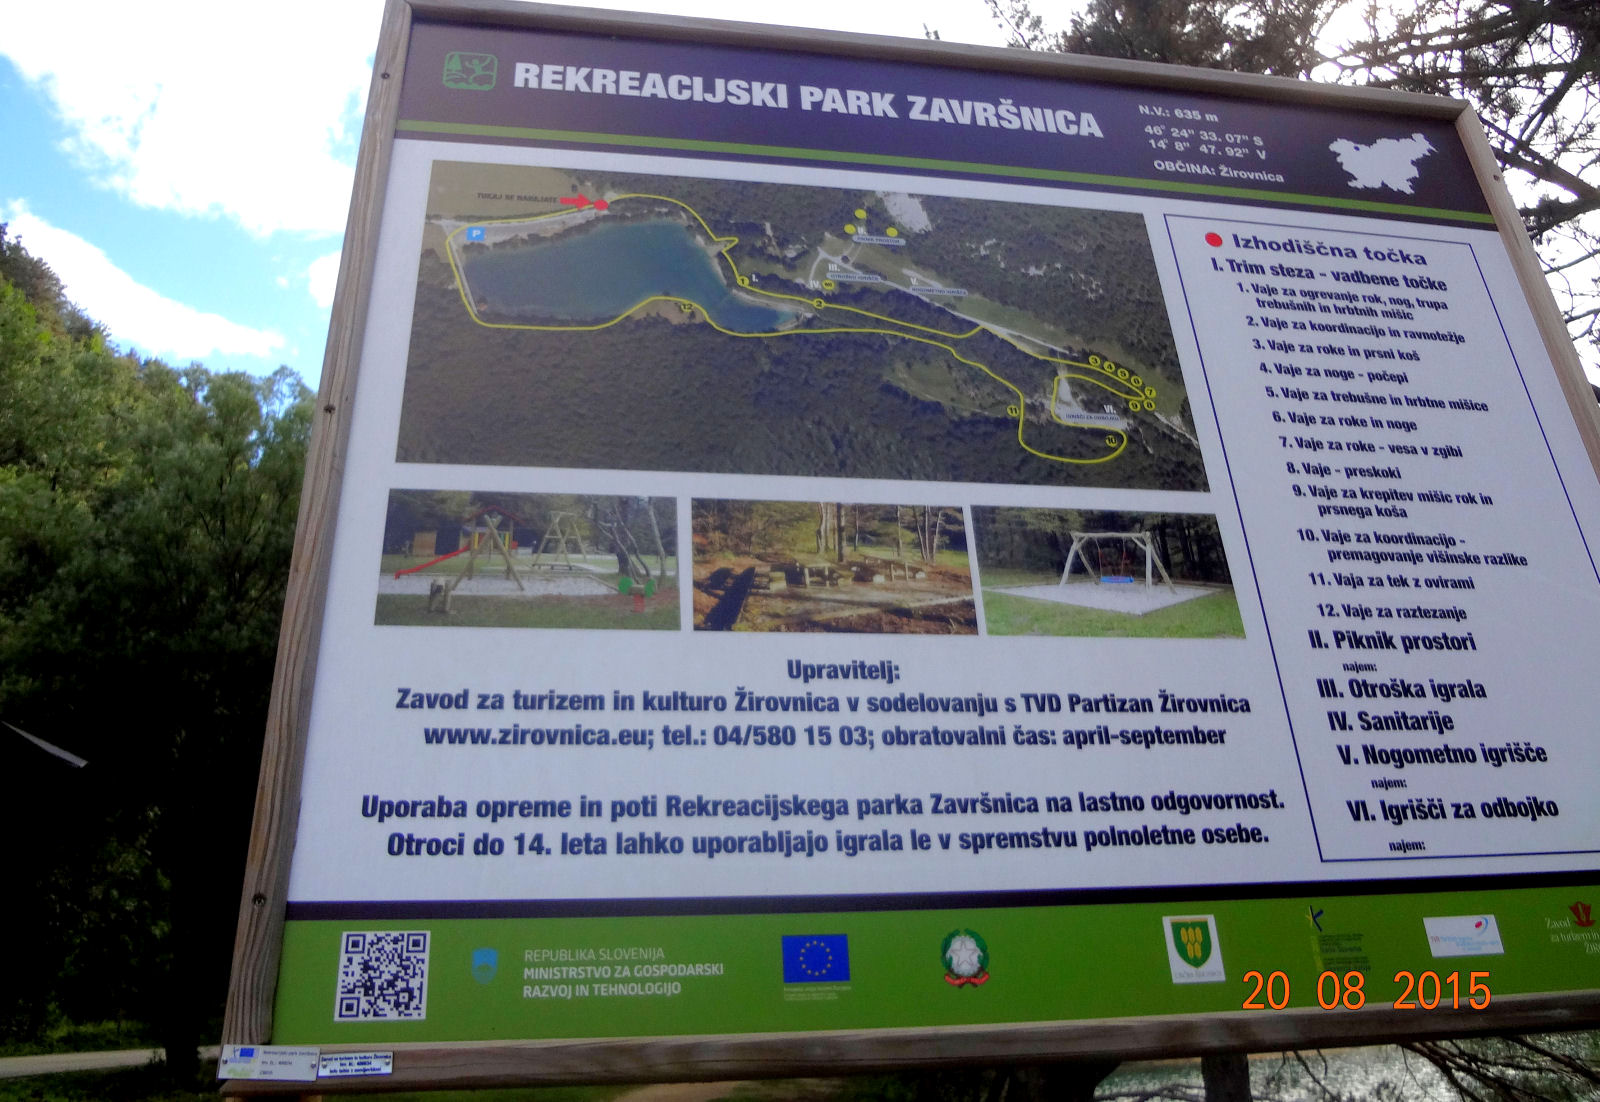 recreation-park-zavrsnica-map-board-1600